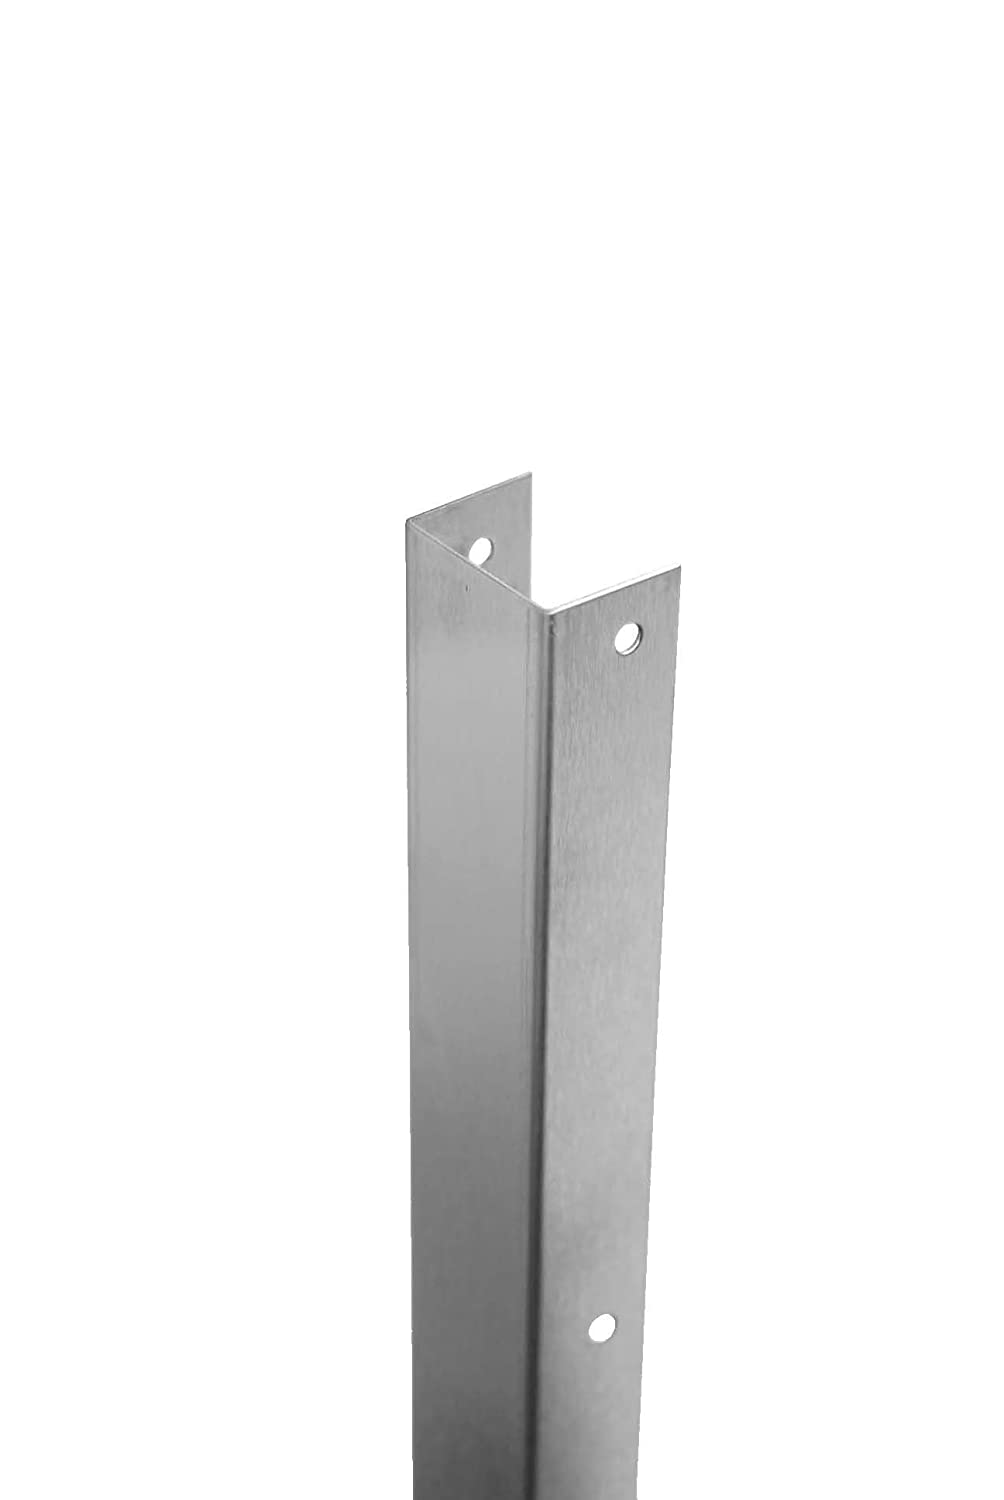 Don-Jo 1298 Stainless Steel 300 Scotch Mount U Guard Satin Stainless Steel Finish 36 Length 3//64 Thick